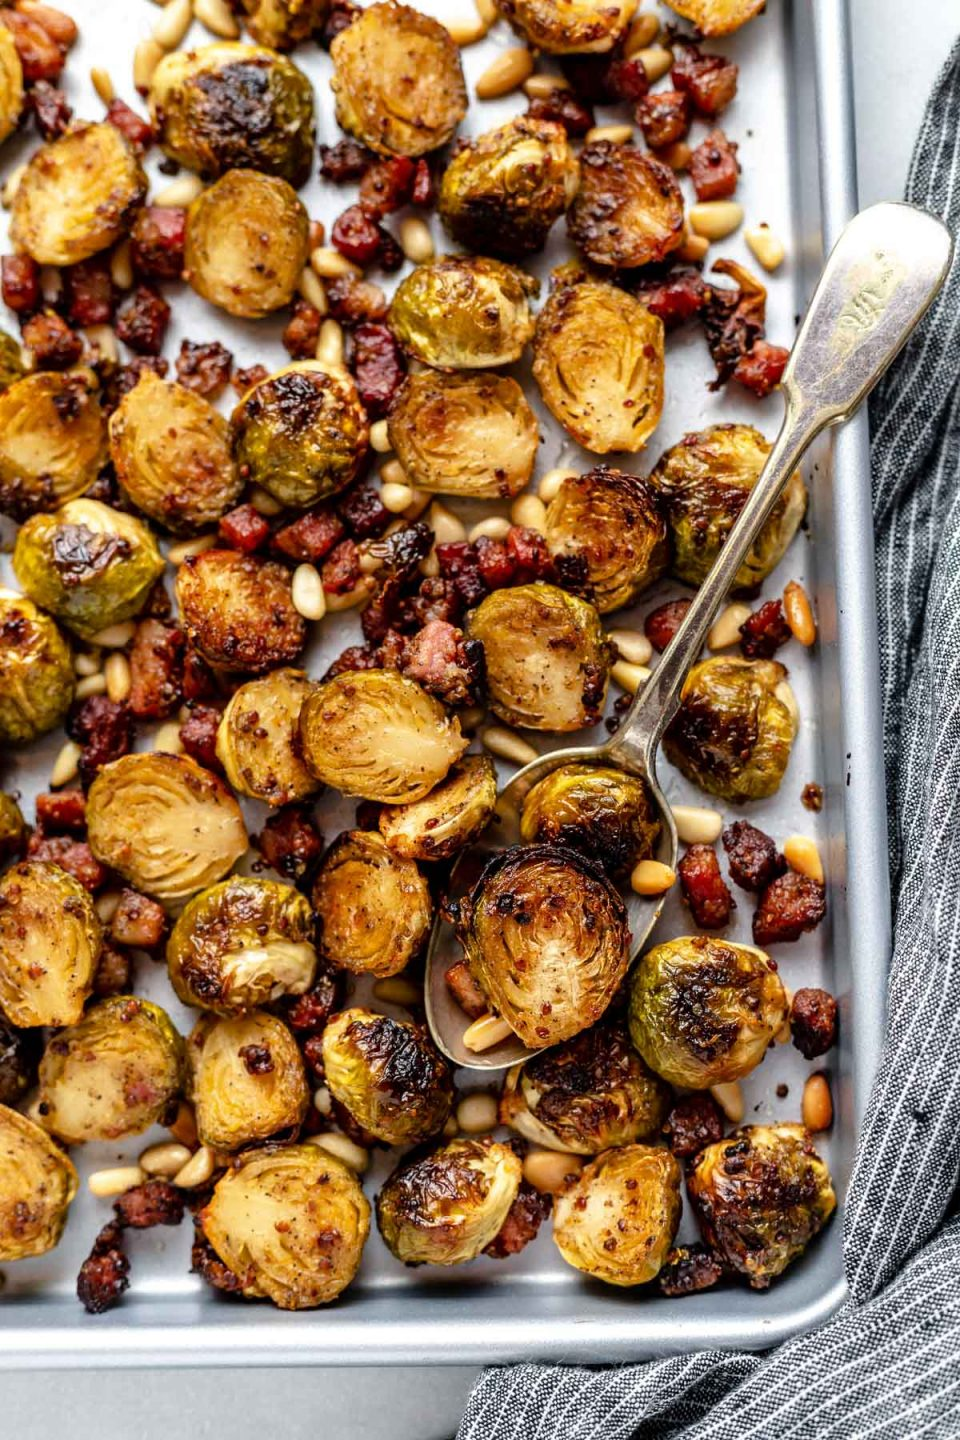 Maple mustard roasted brussels sprouts with pancetta & pine nuts on a large baking sheet. The baking sheet sits atop a light blue surface next to a striped blue linen napkin.